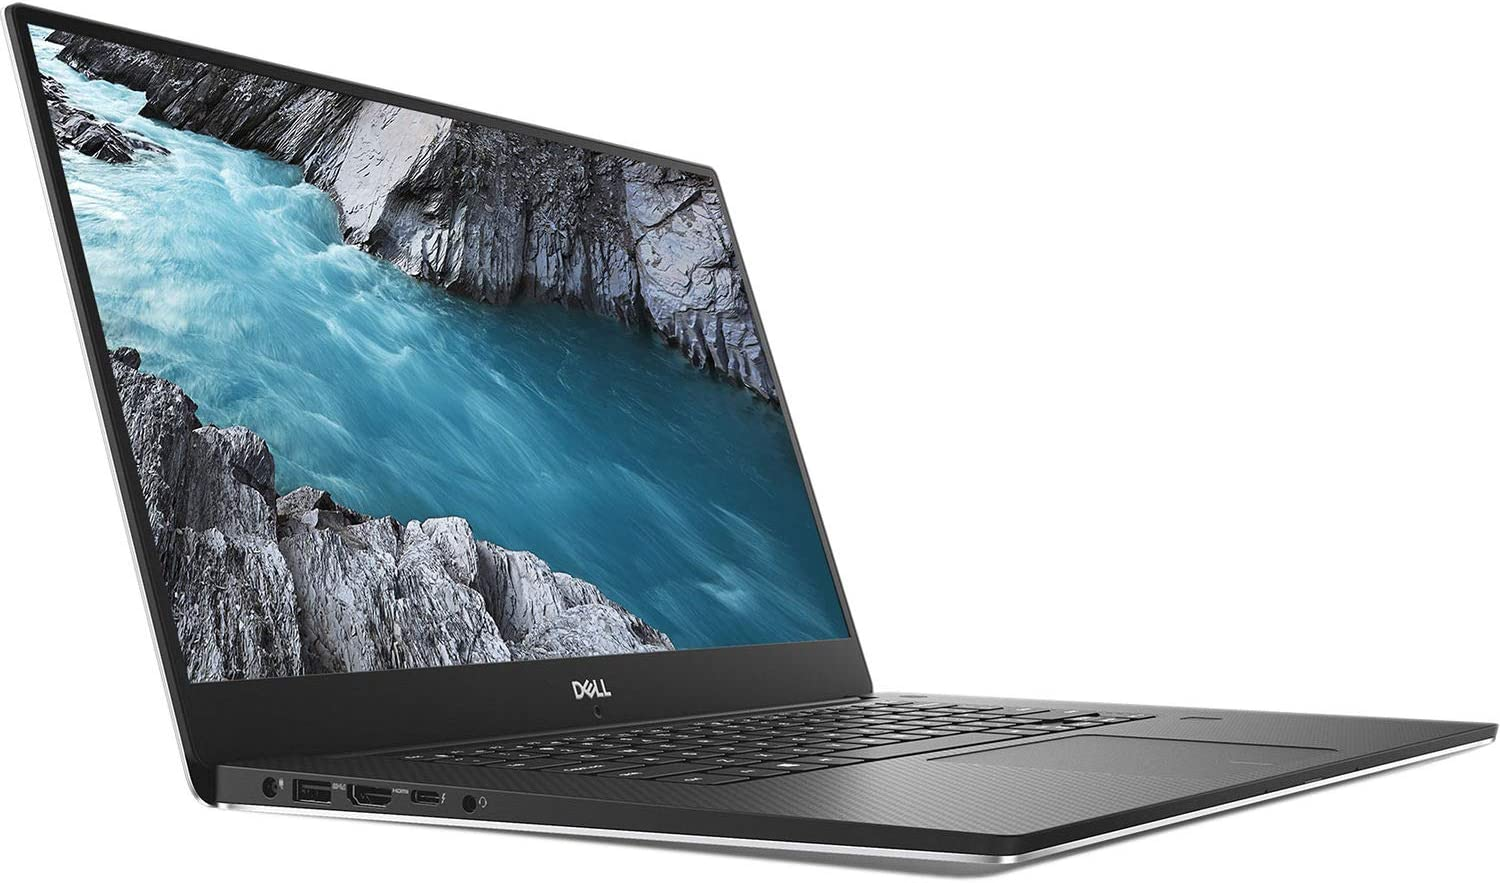 "Dell XPS 7590 15.6"" 4K Ultra HD Laptop - 9th Gen Intel Core i7-9750H up to 4.50 GHz Processor, 32GB DDR4 Memory, 4TB PCIe Solid State Drive, NVIDIA GeForce GTX 1650 GPU, Windows 10 Pro, Silver"